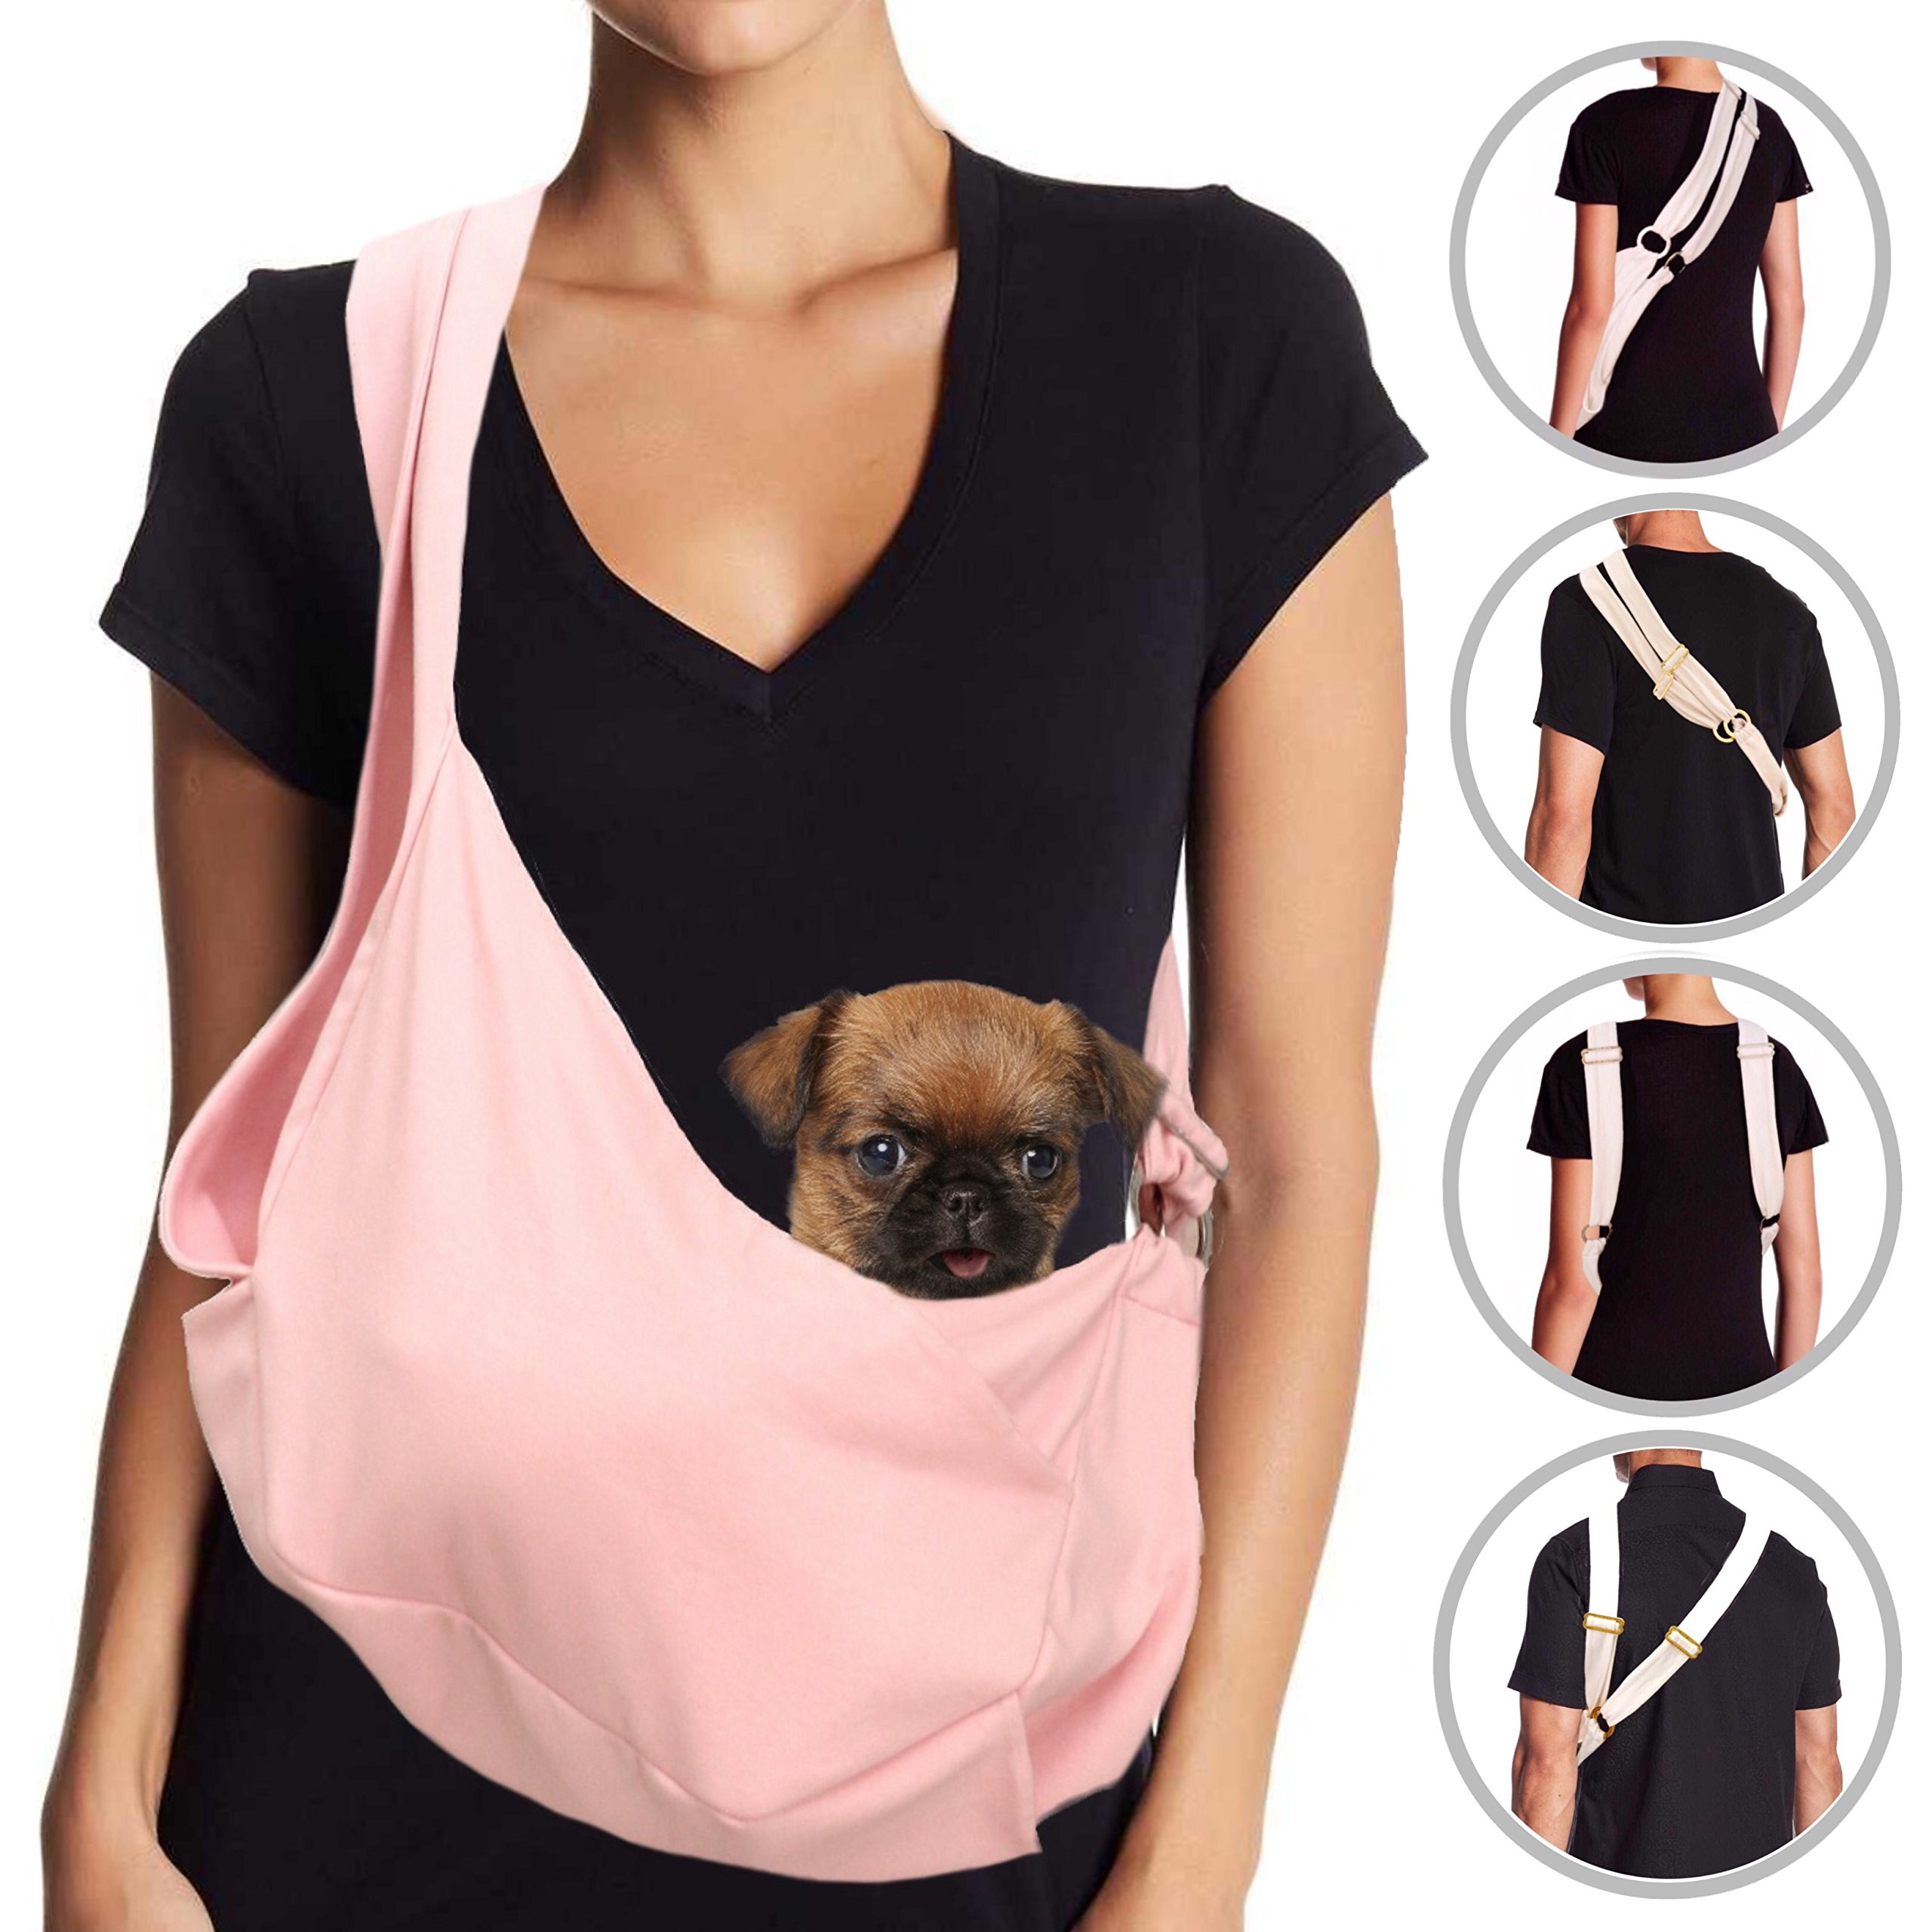 MISO PUP Dual Strap Dog Sling Carrier (Puppy Pink/Silver) Pockets & Head Notches Made in USA Machine Washable for Spoiled Small Dogs 8lbs